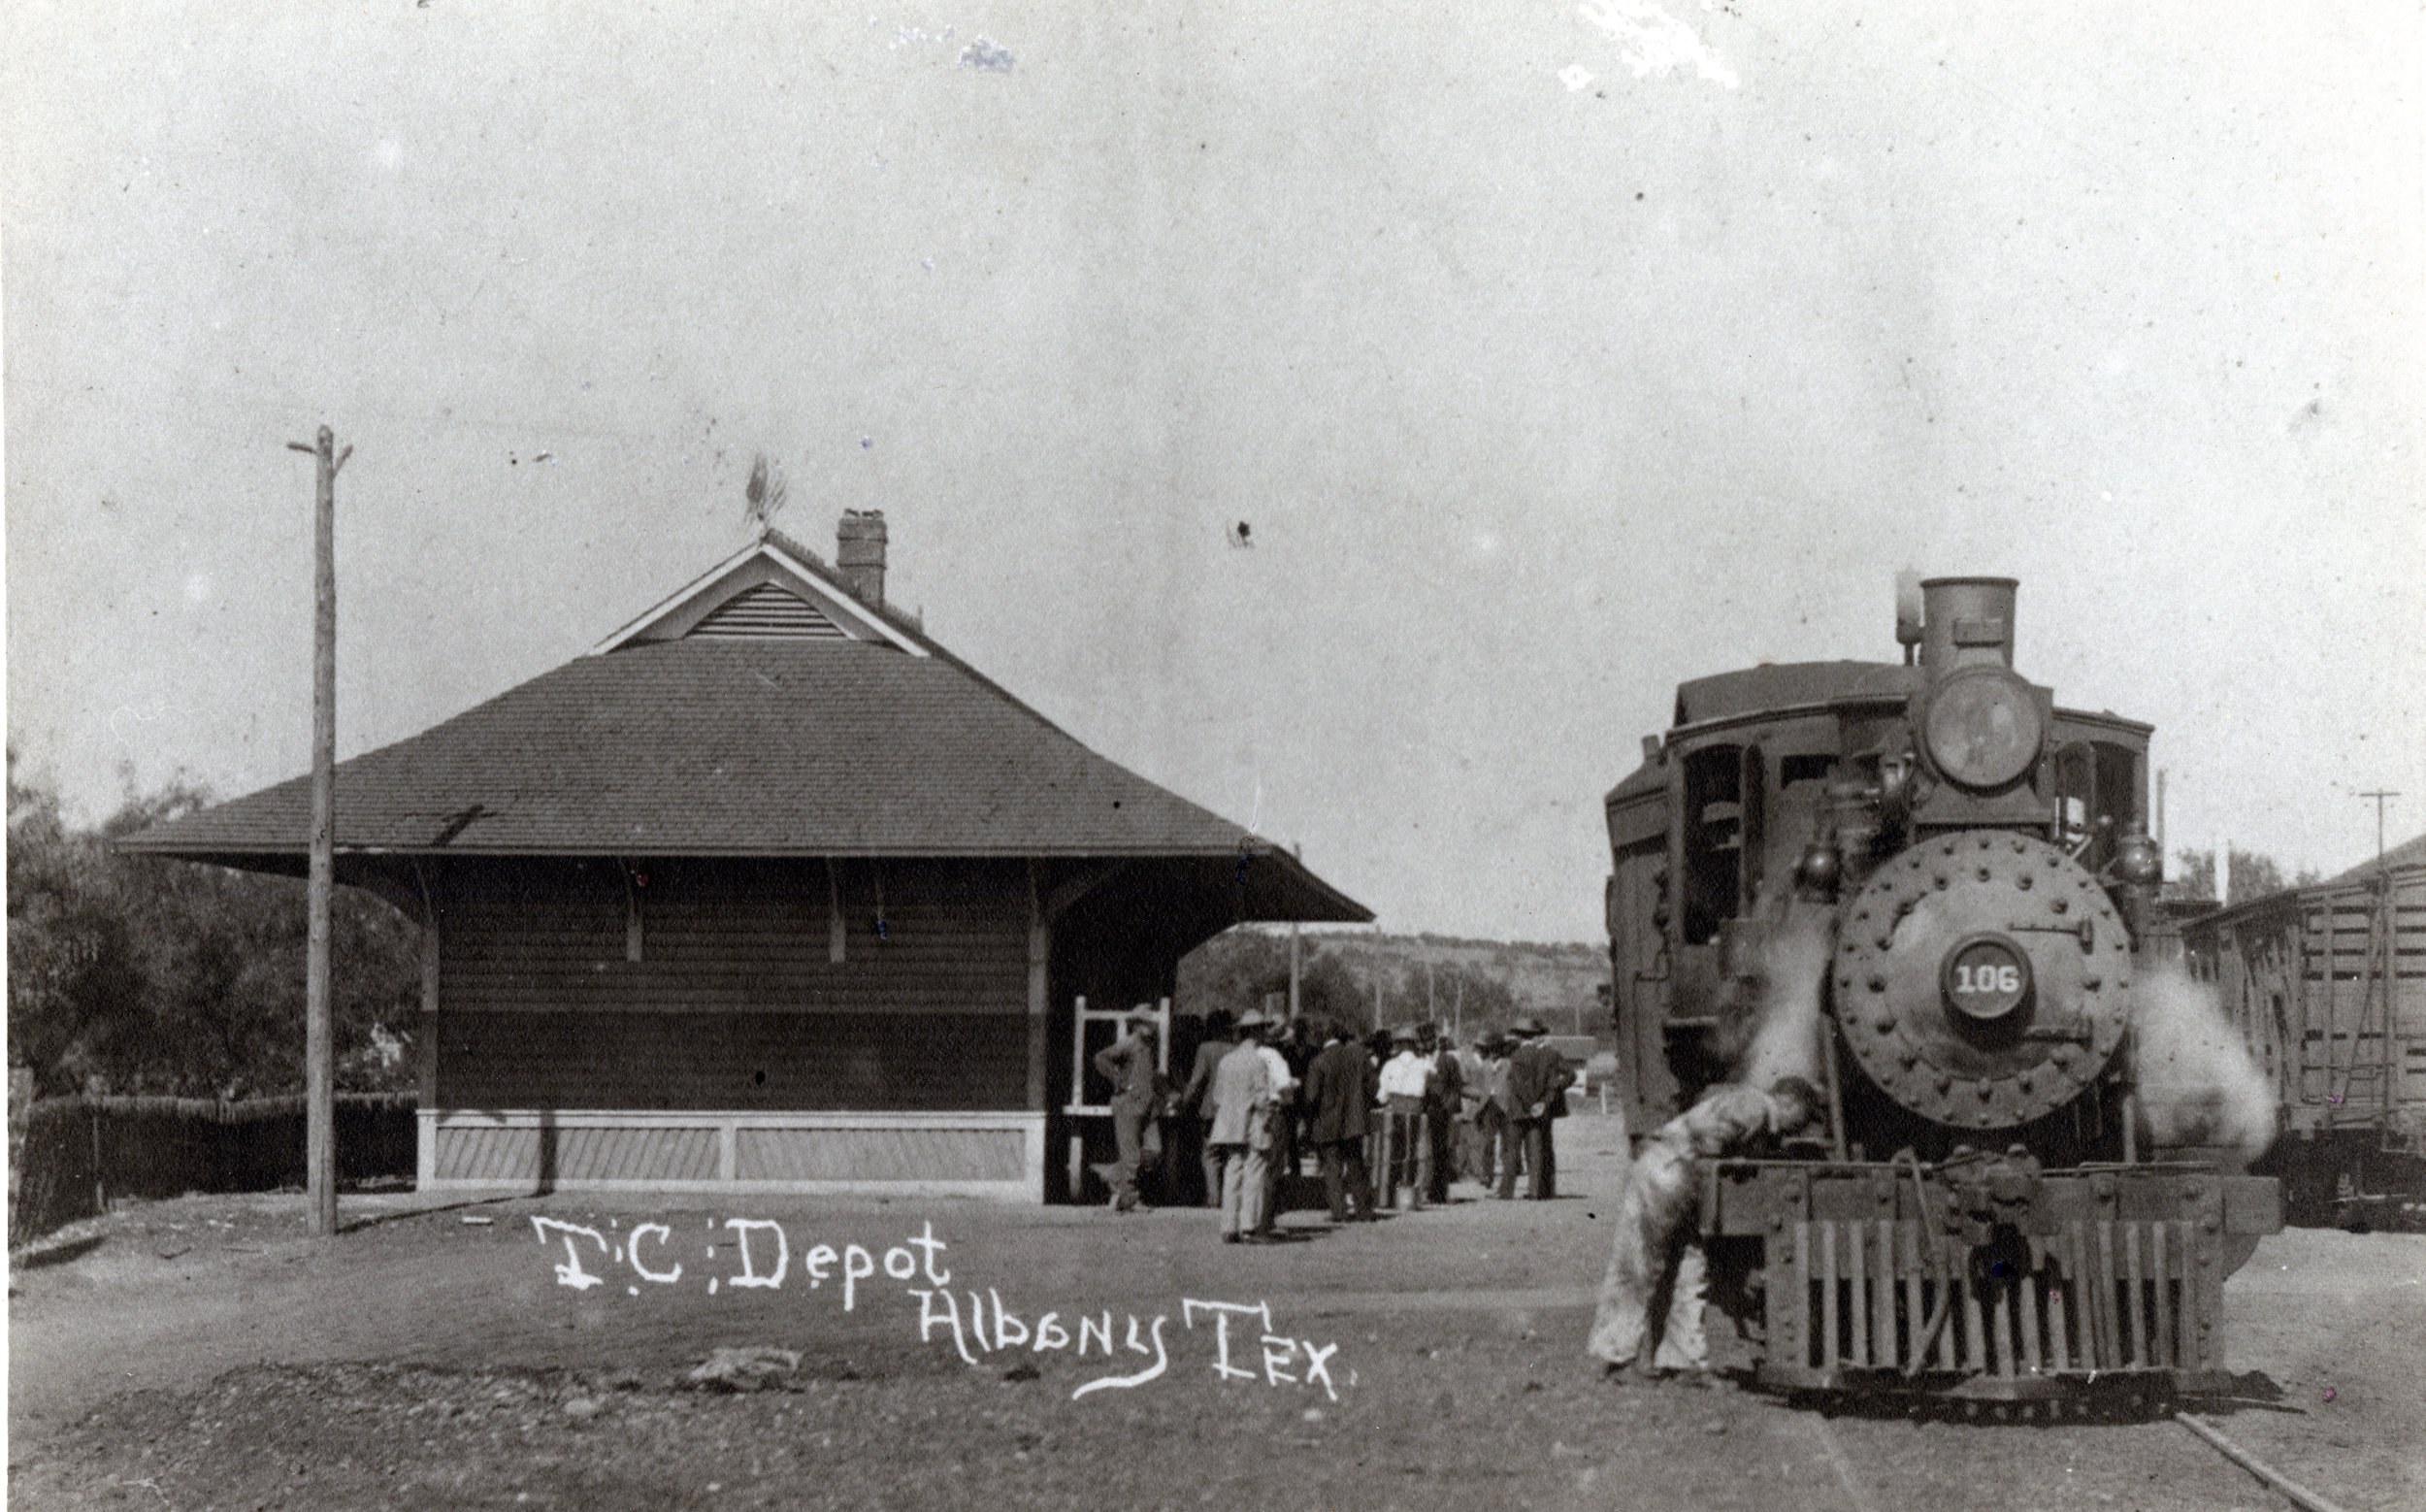 Texas Central Depot, East side, Albany TX, Undated.jpg